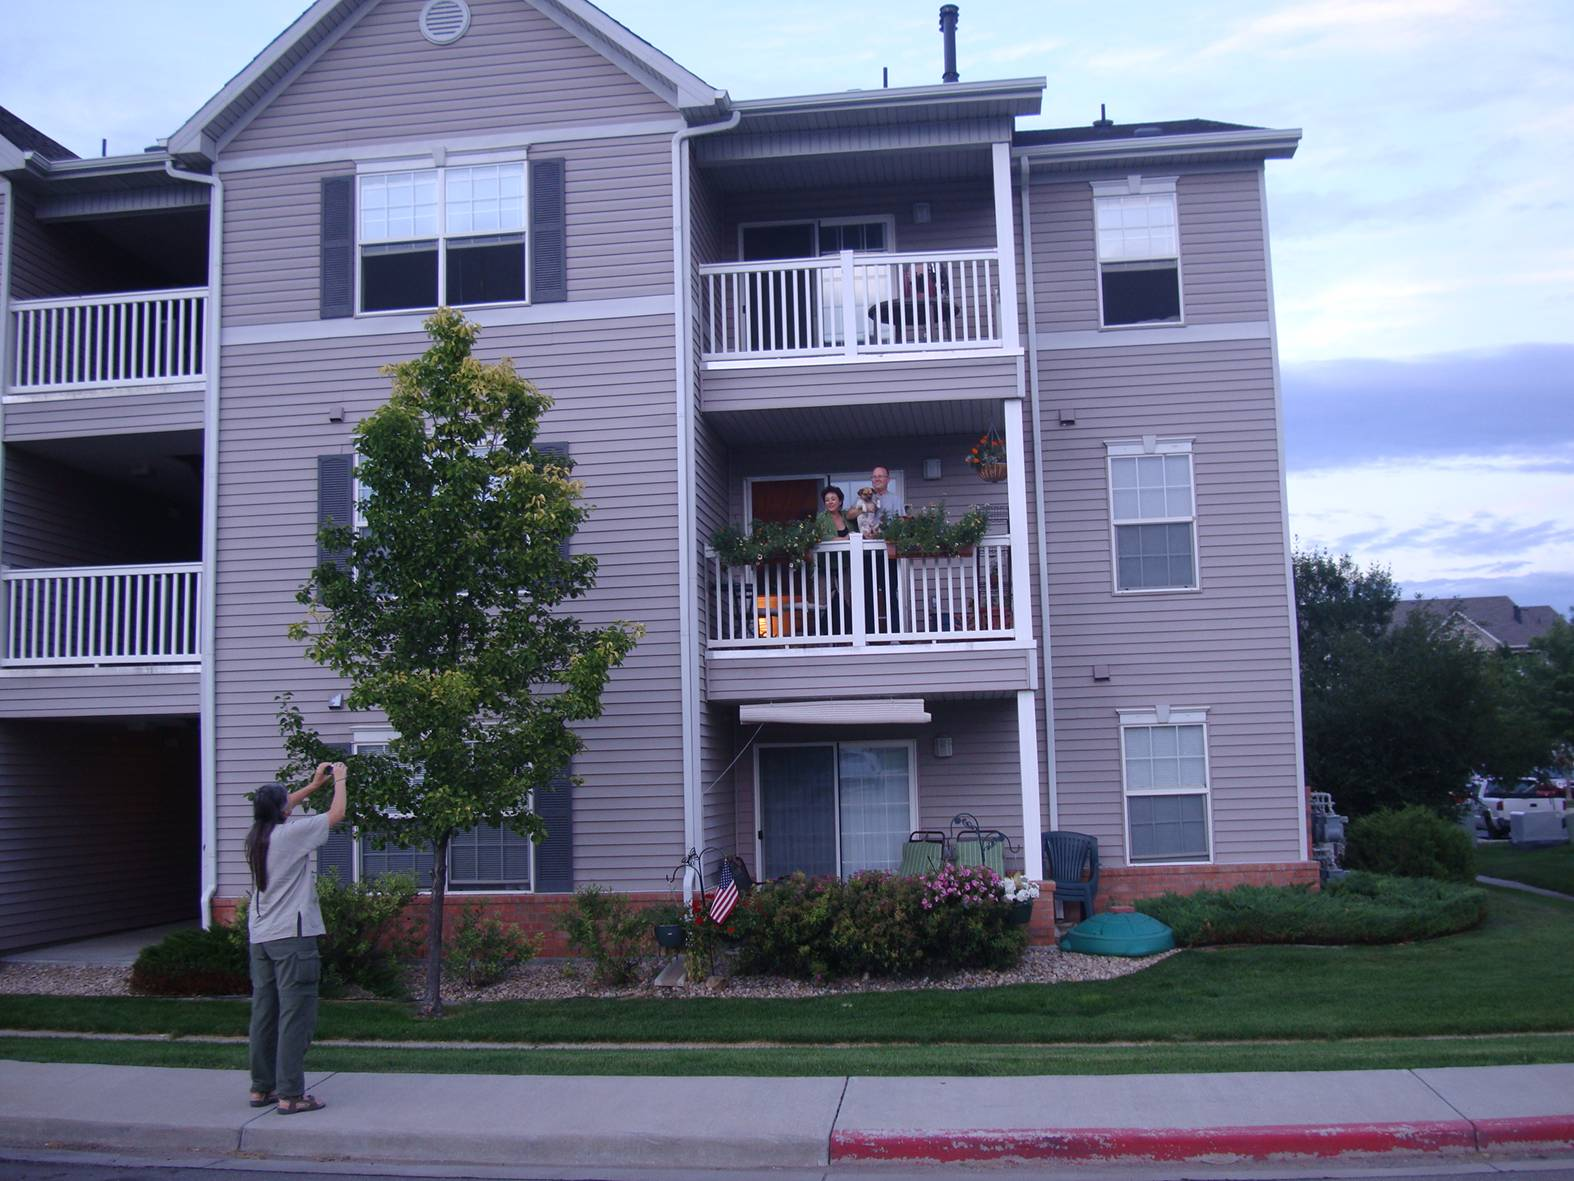 Picture: Thomas and Marina on their apartment balcony, Longmont,  Colorado.